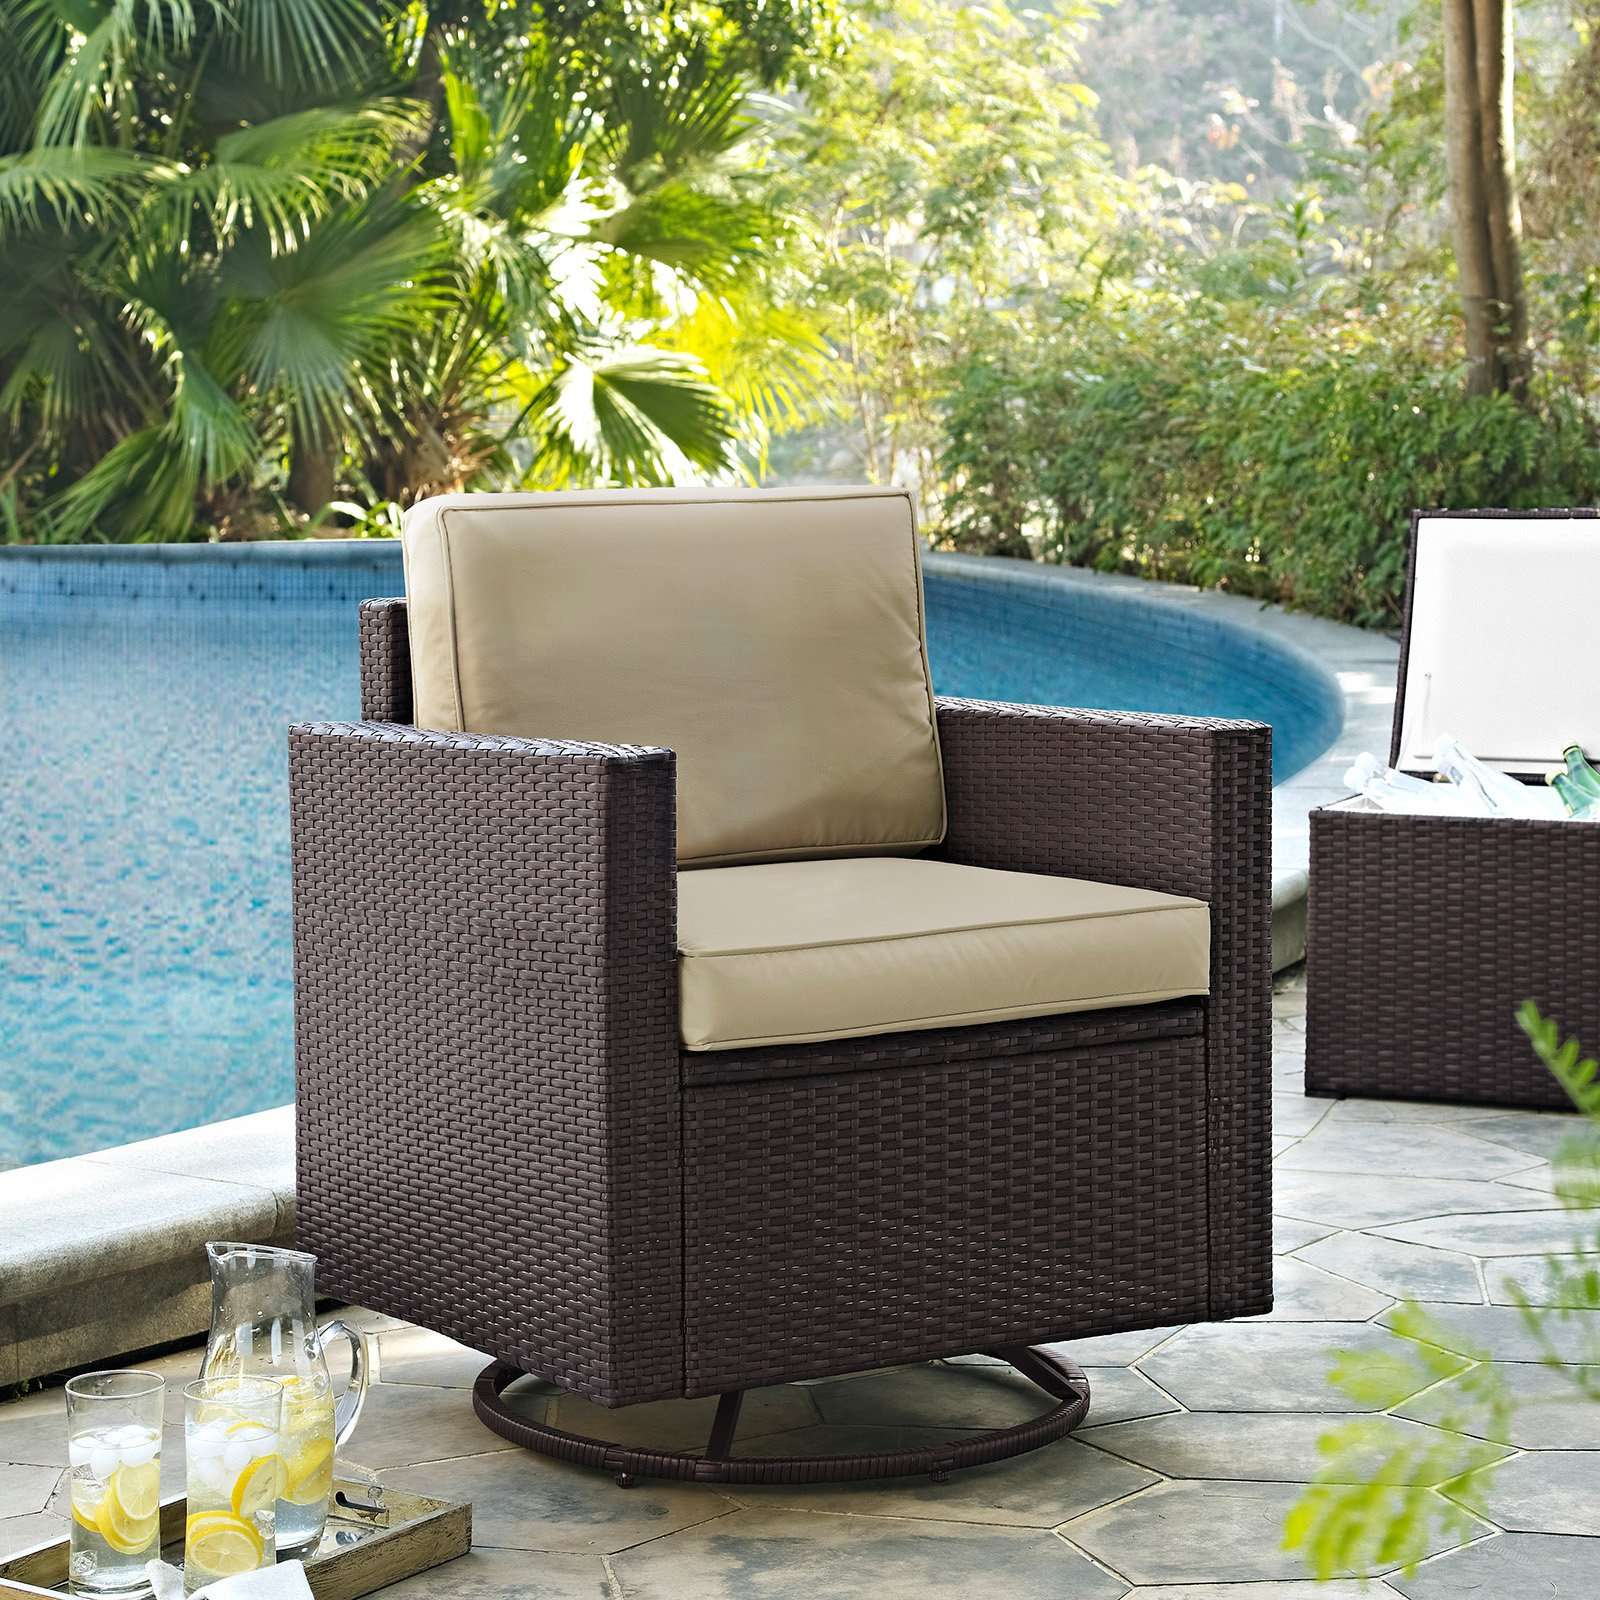 Crosley Palm Harbor Outdoor Wicker Swivel Rocker Chair